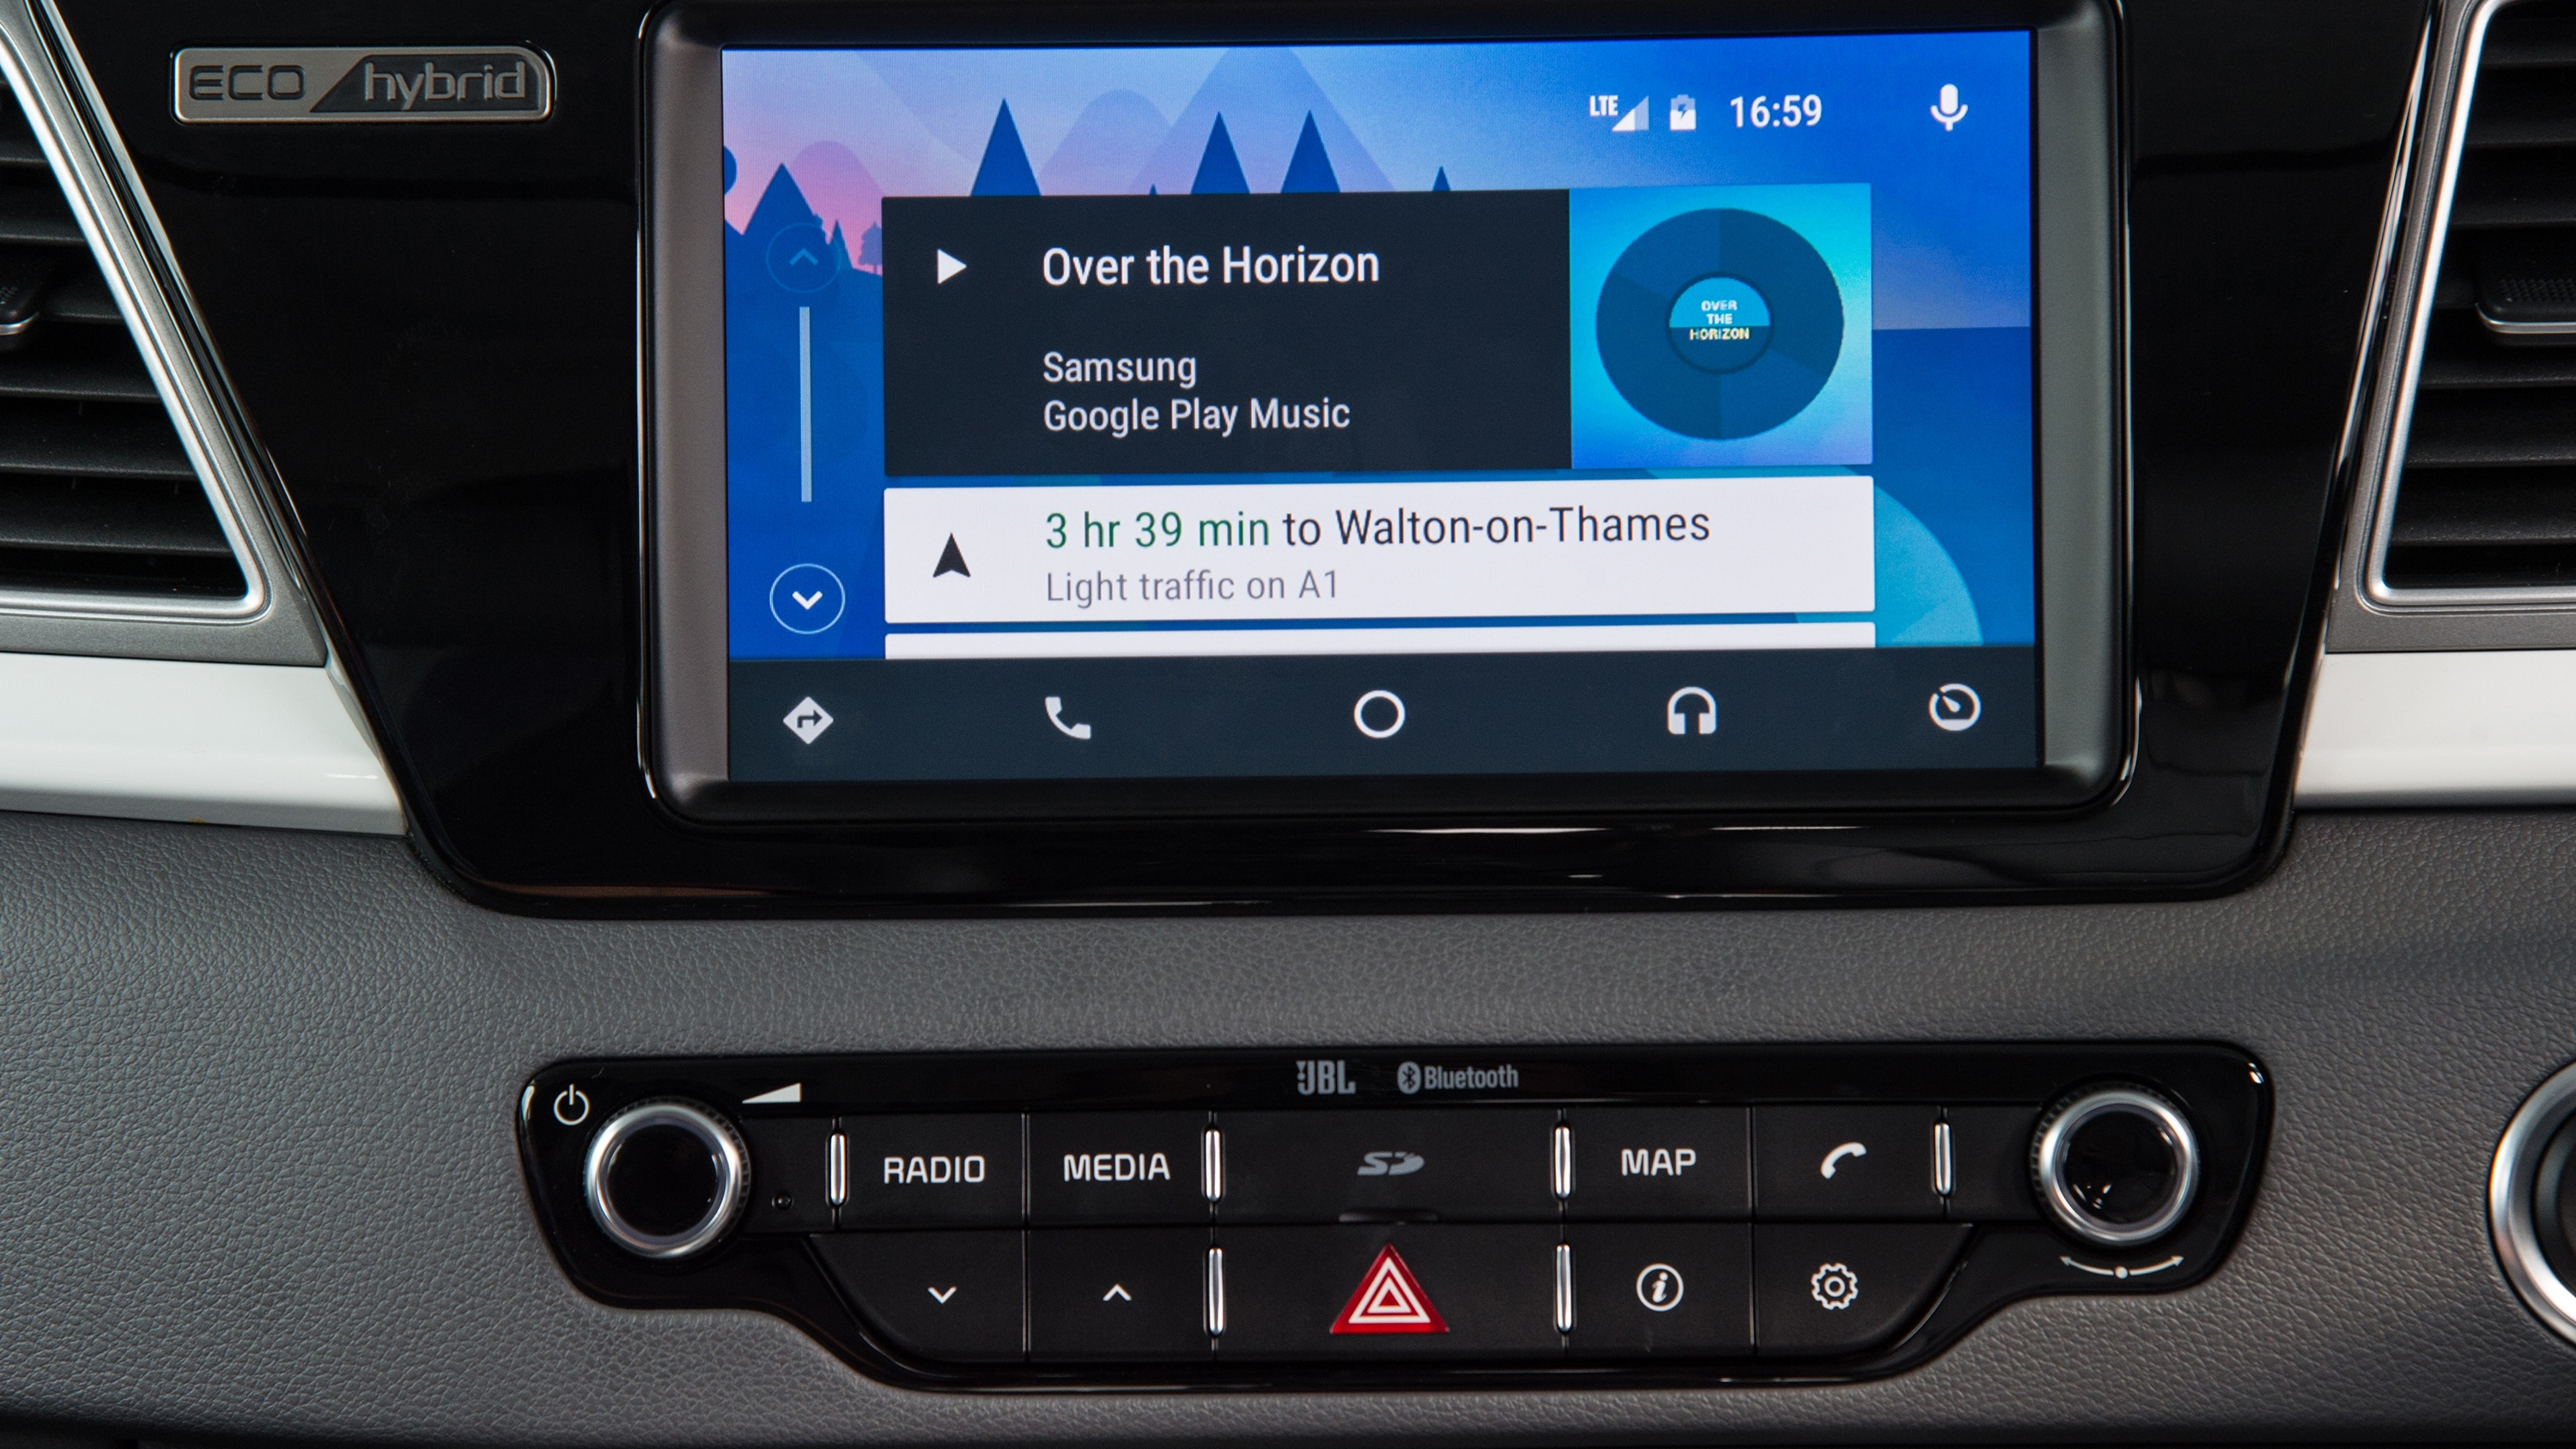 Android Auto And Le Carplay Are Both Supported By The Kia Hyundai